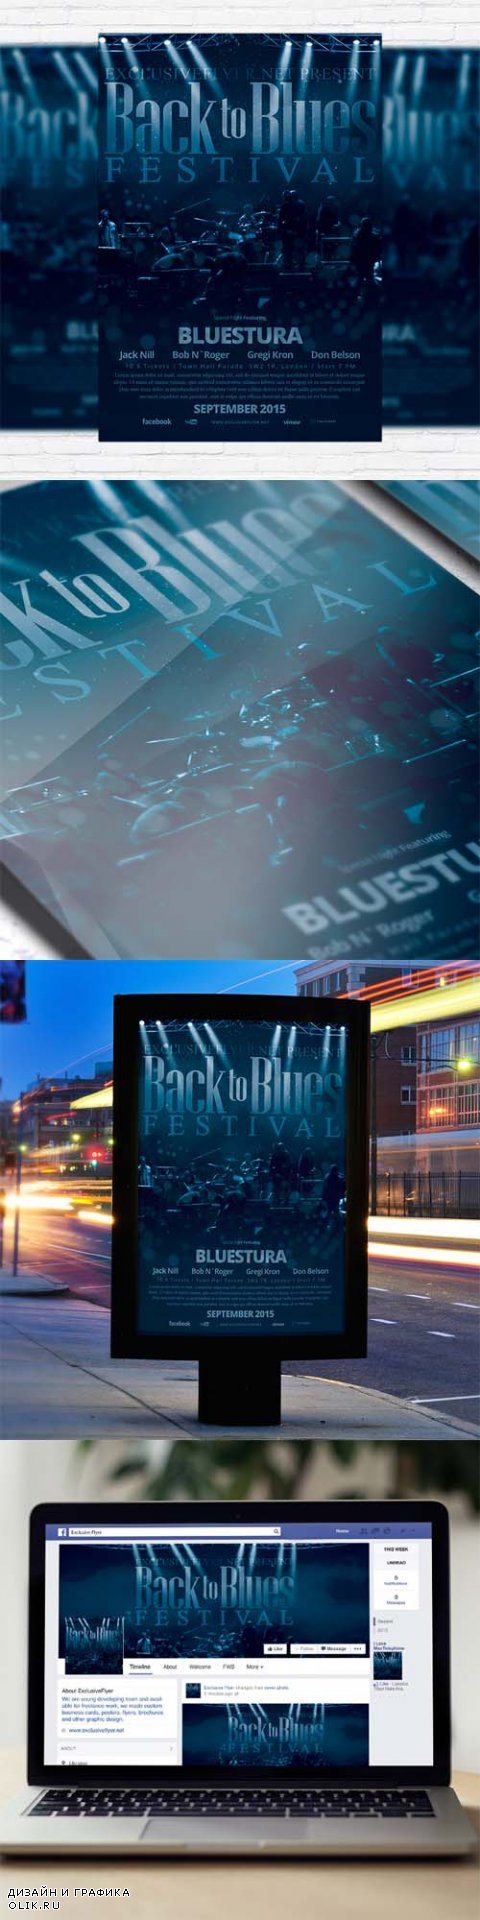 Flyer Template - Blues Festival + Facebook Cover